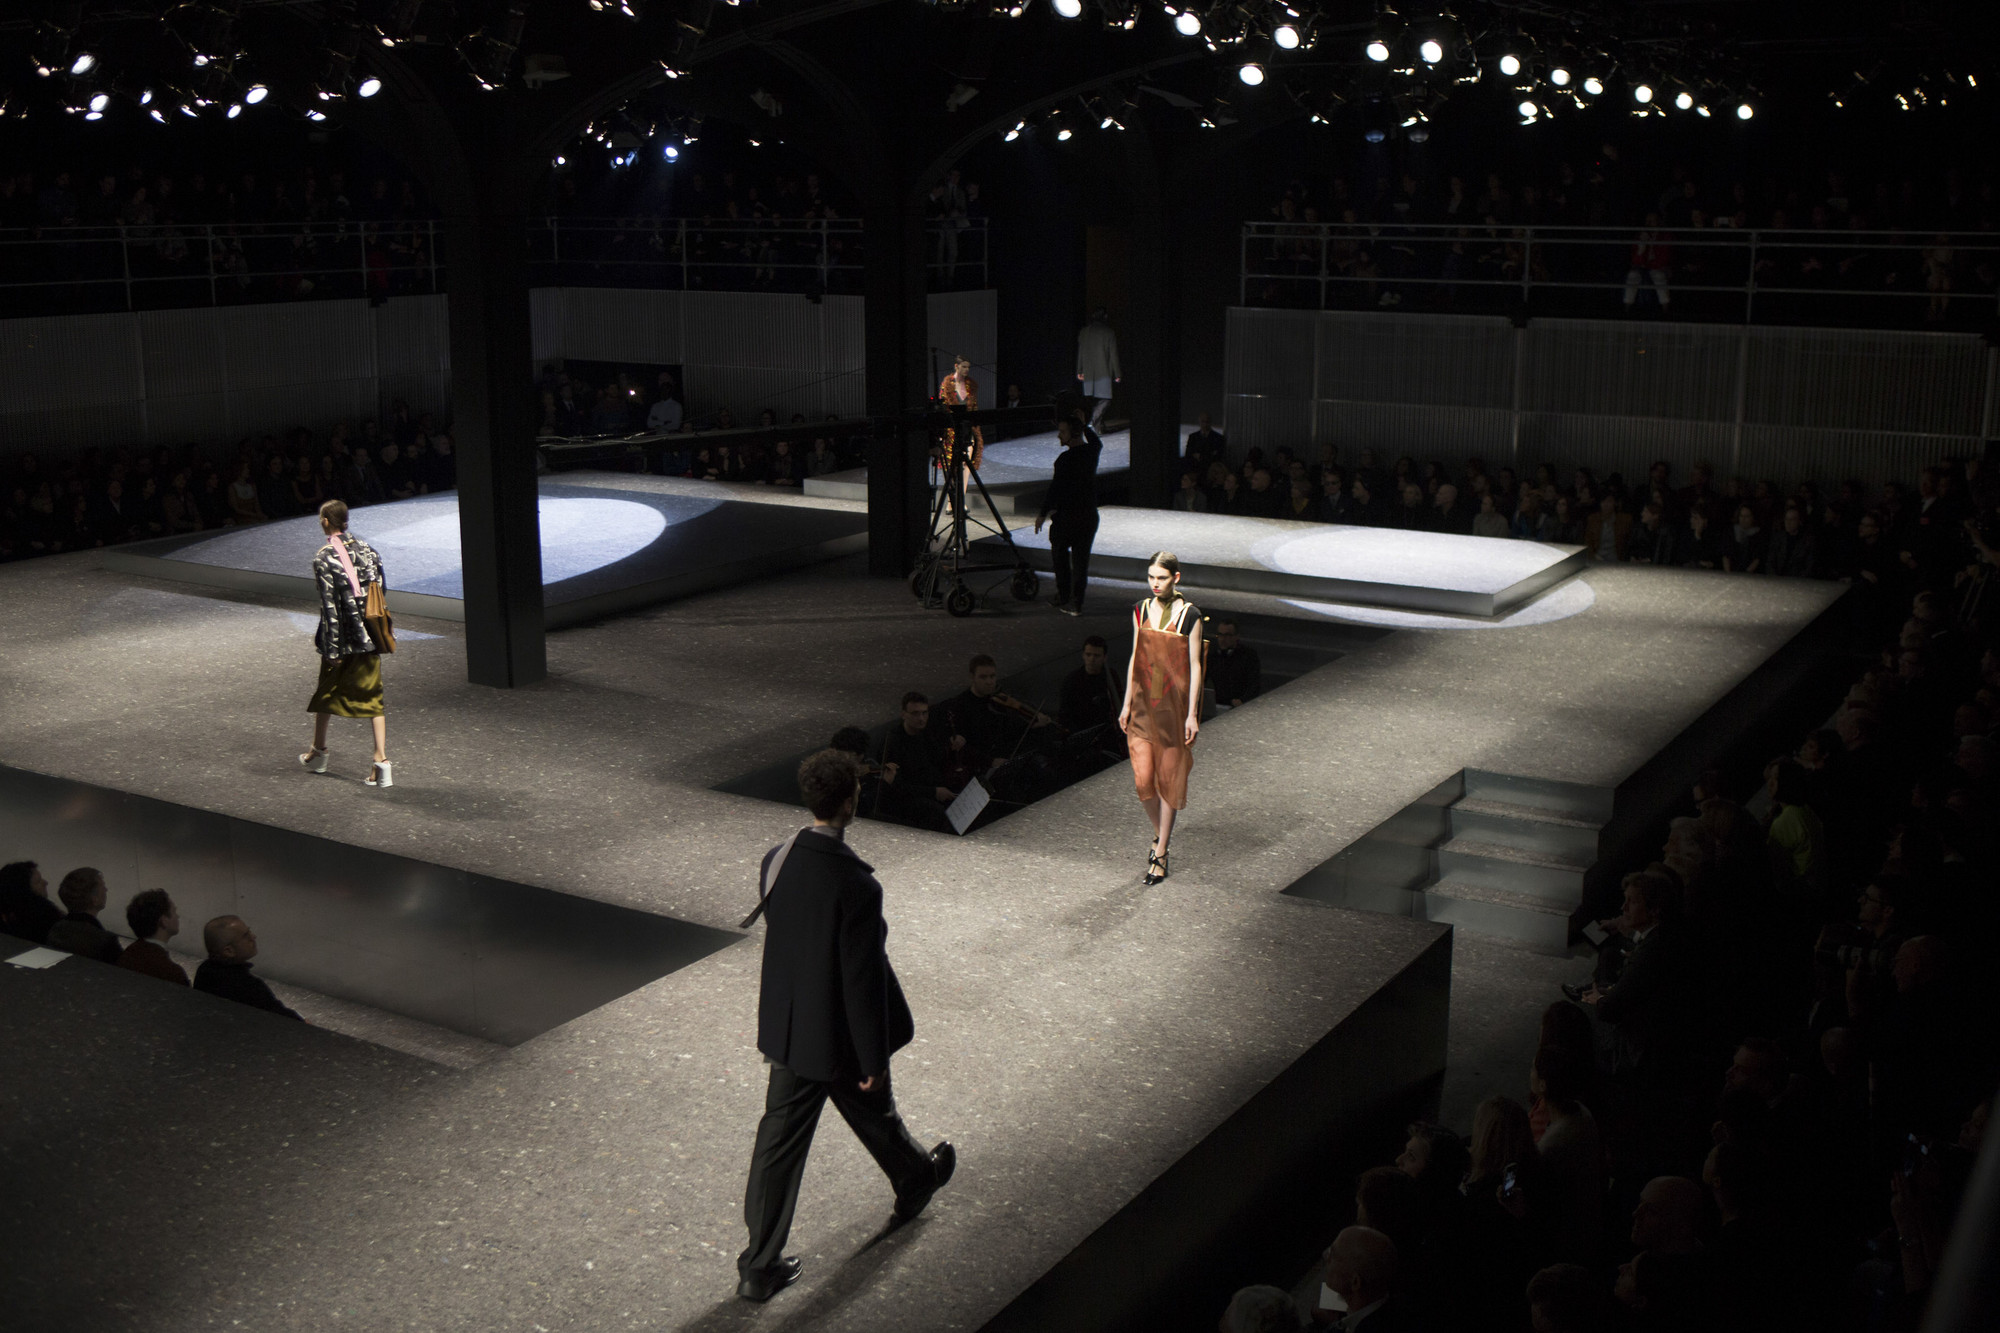 OMA's Latest Prada Catwalk: A Stage Punctuated with Geometric Pockets, © Agostino Osio / OMA